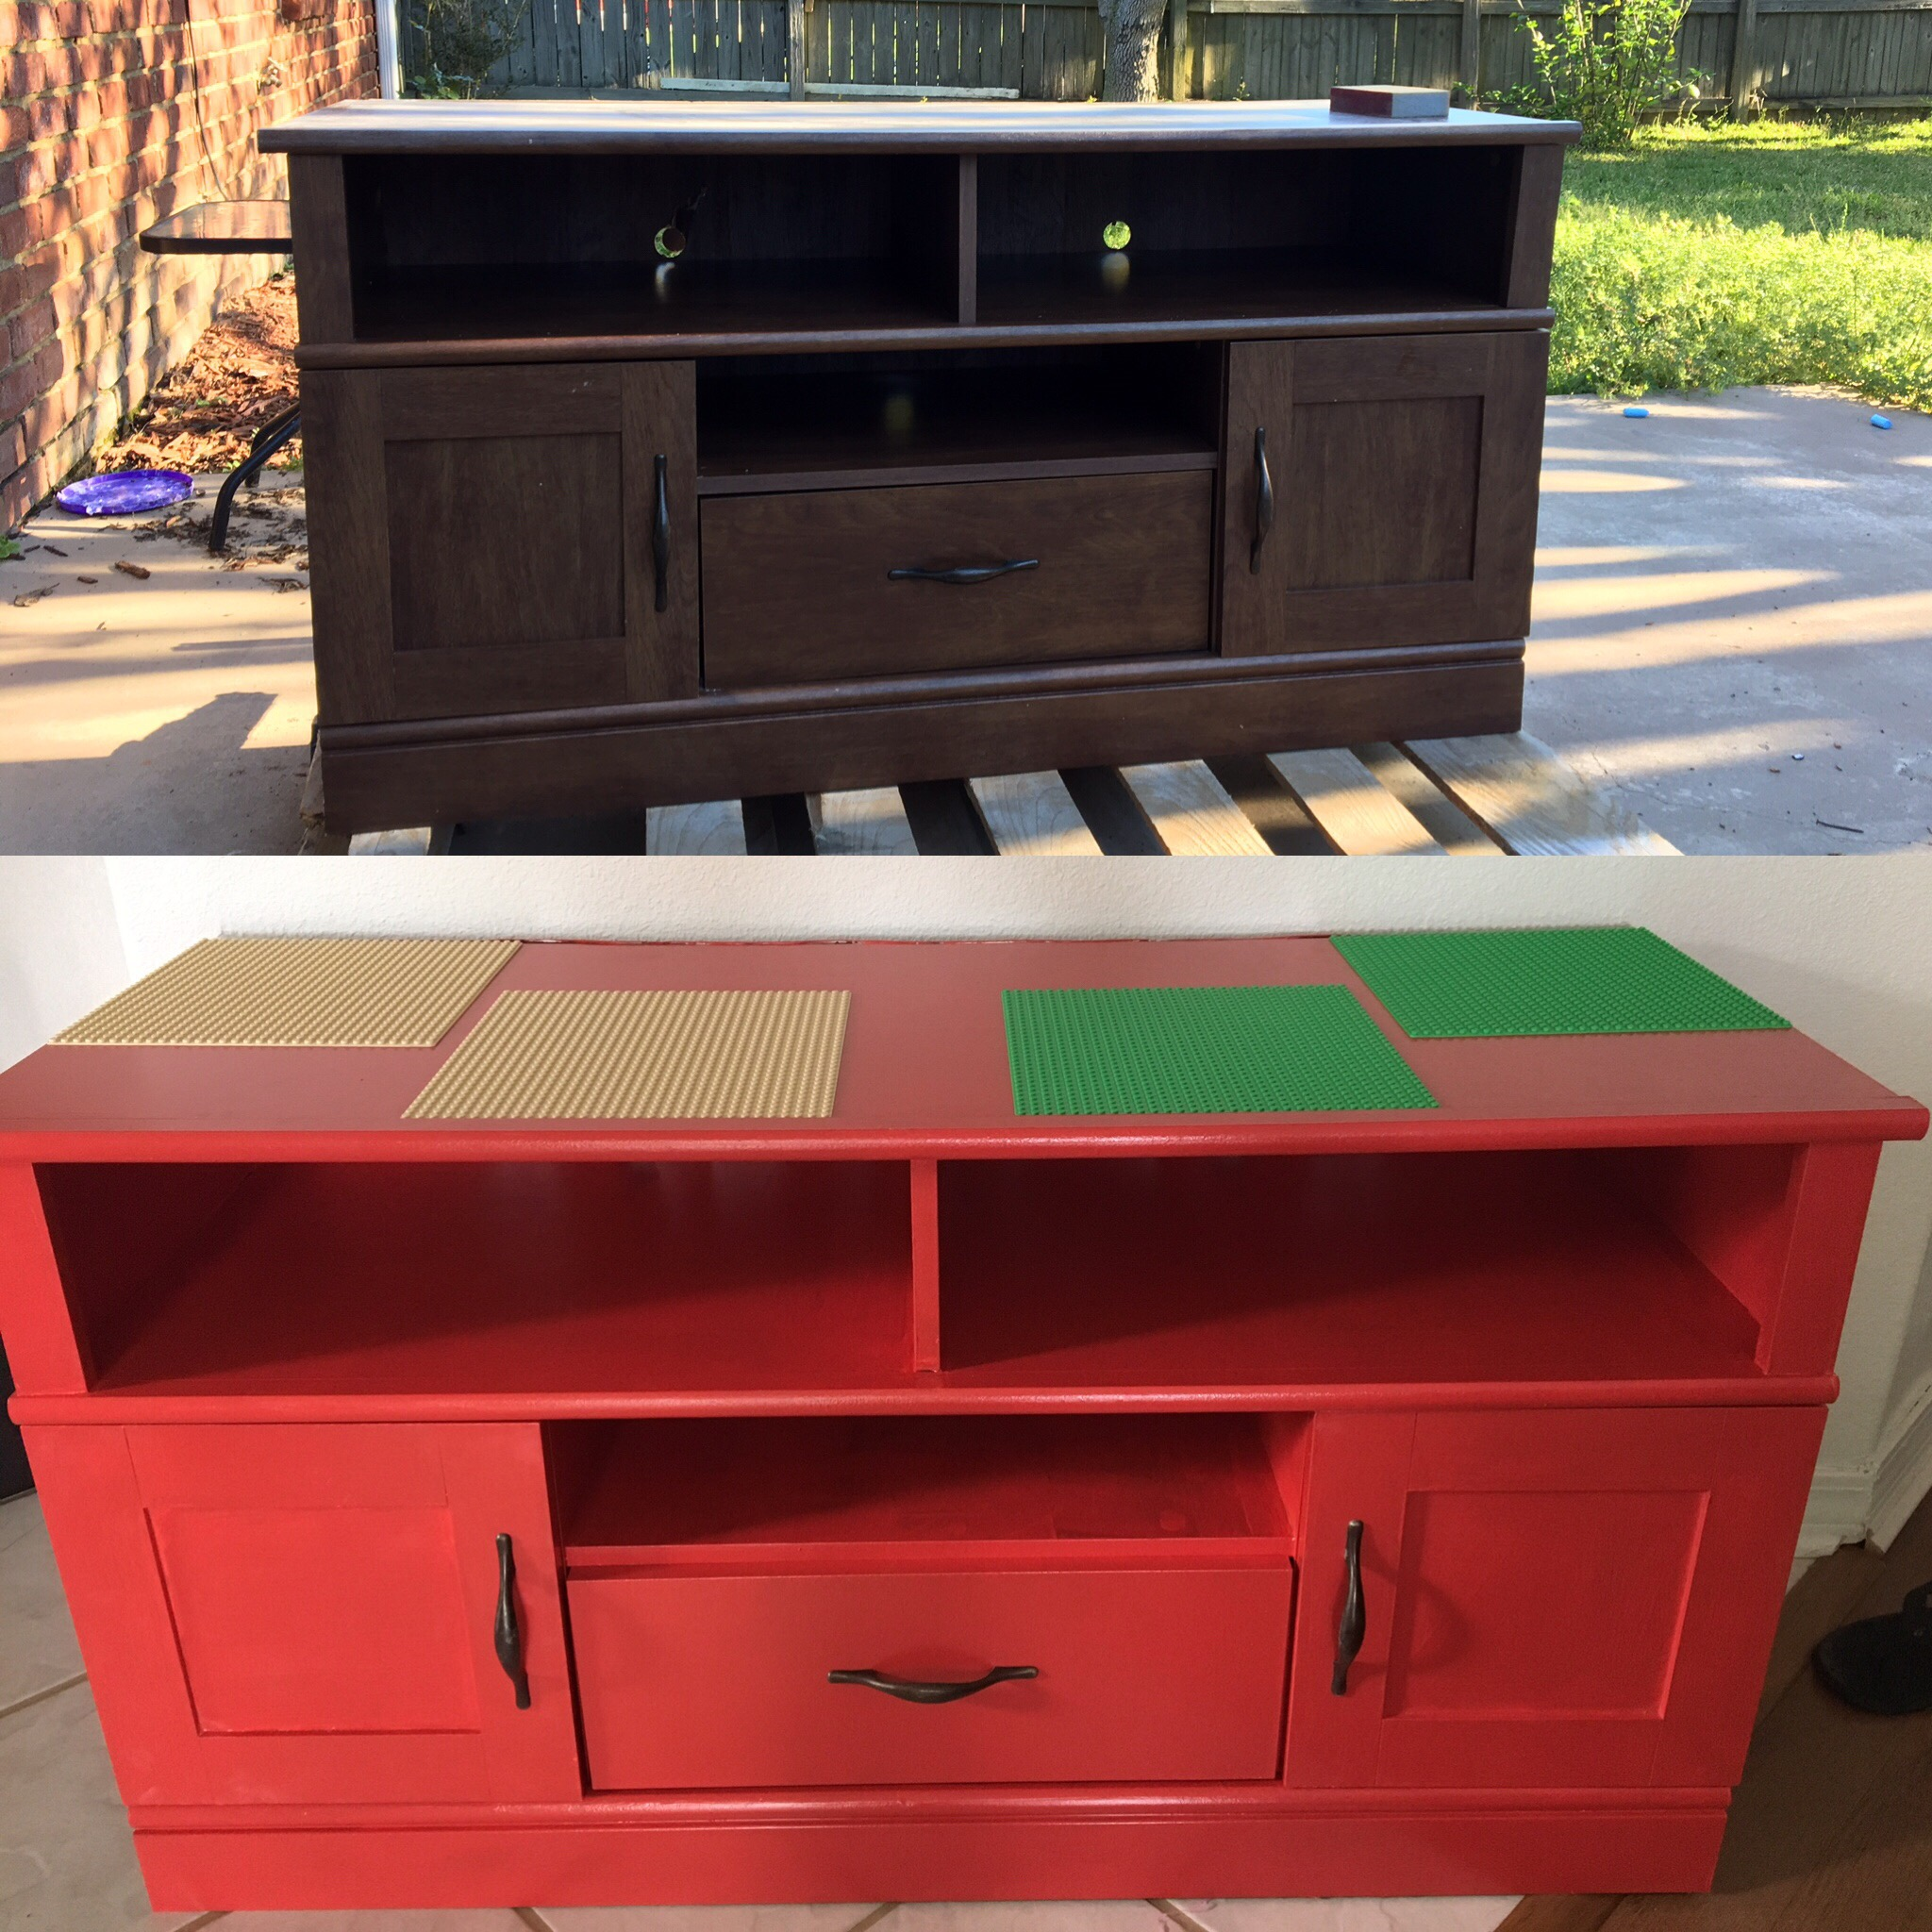 My first diy lego table klutzy homemaker for Homemakers furniture project